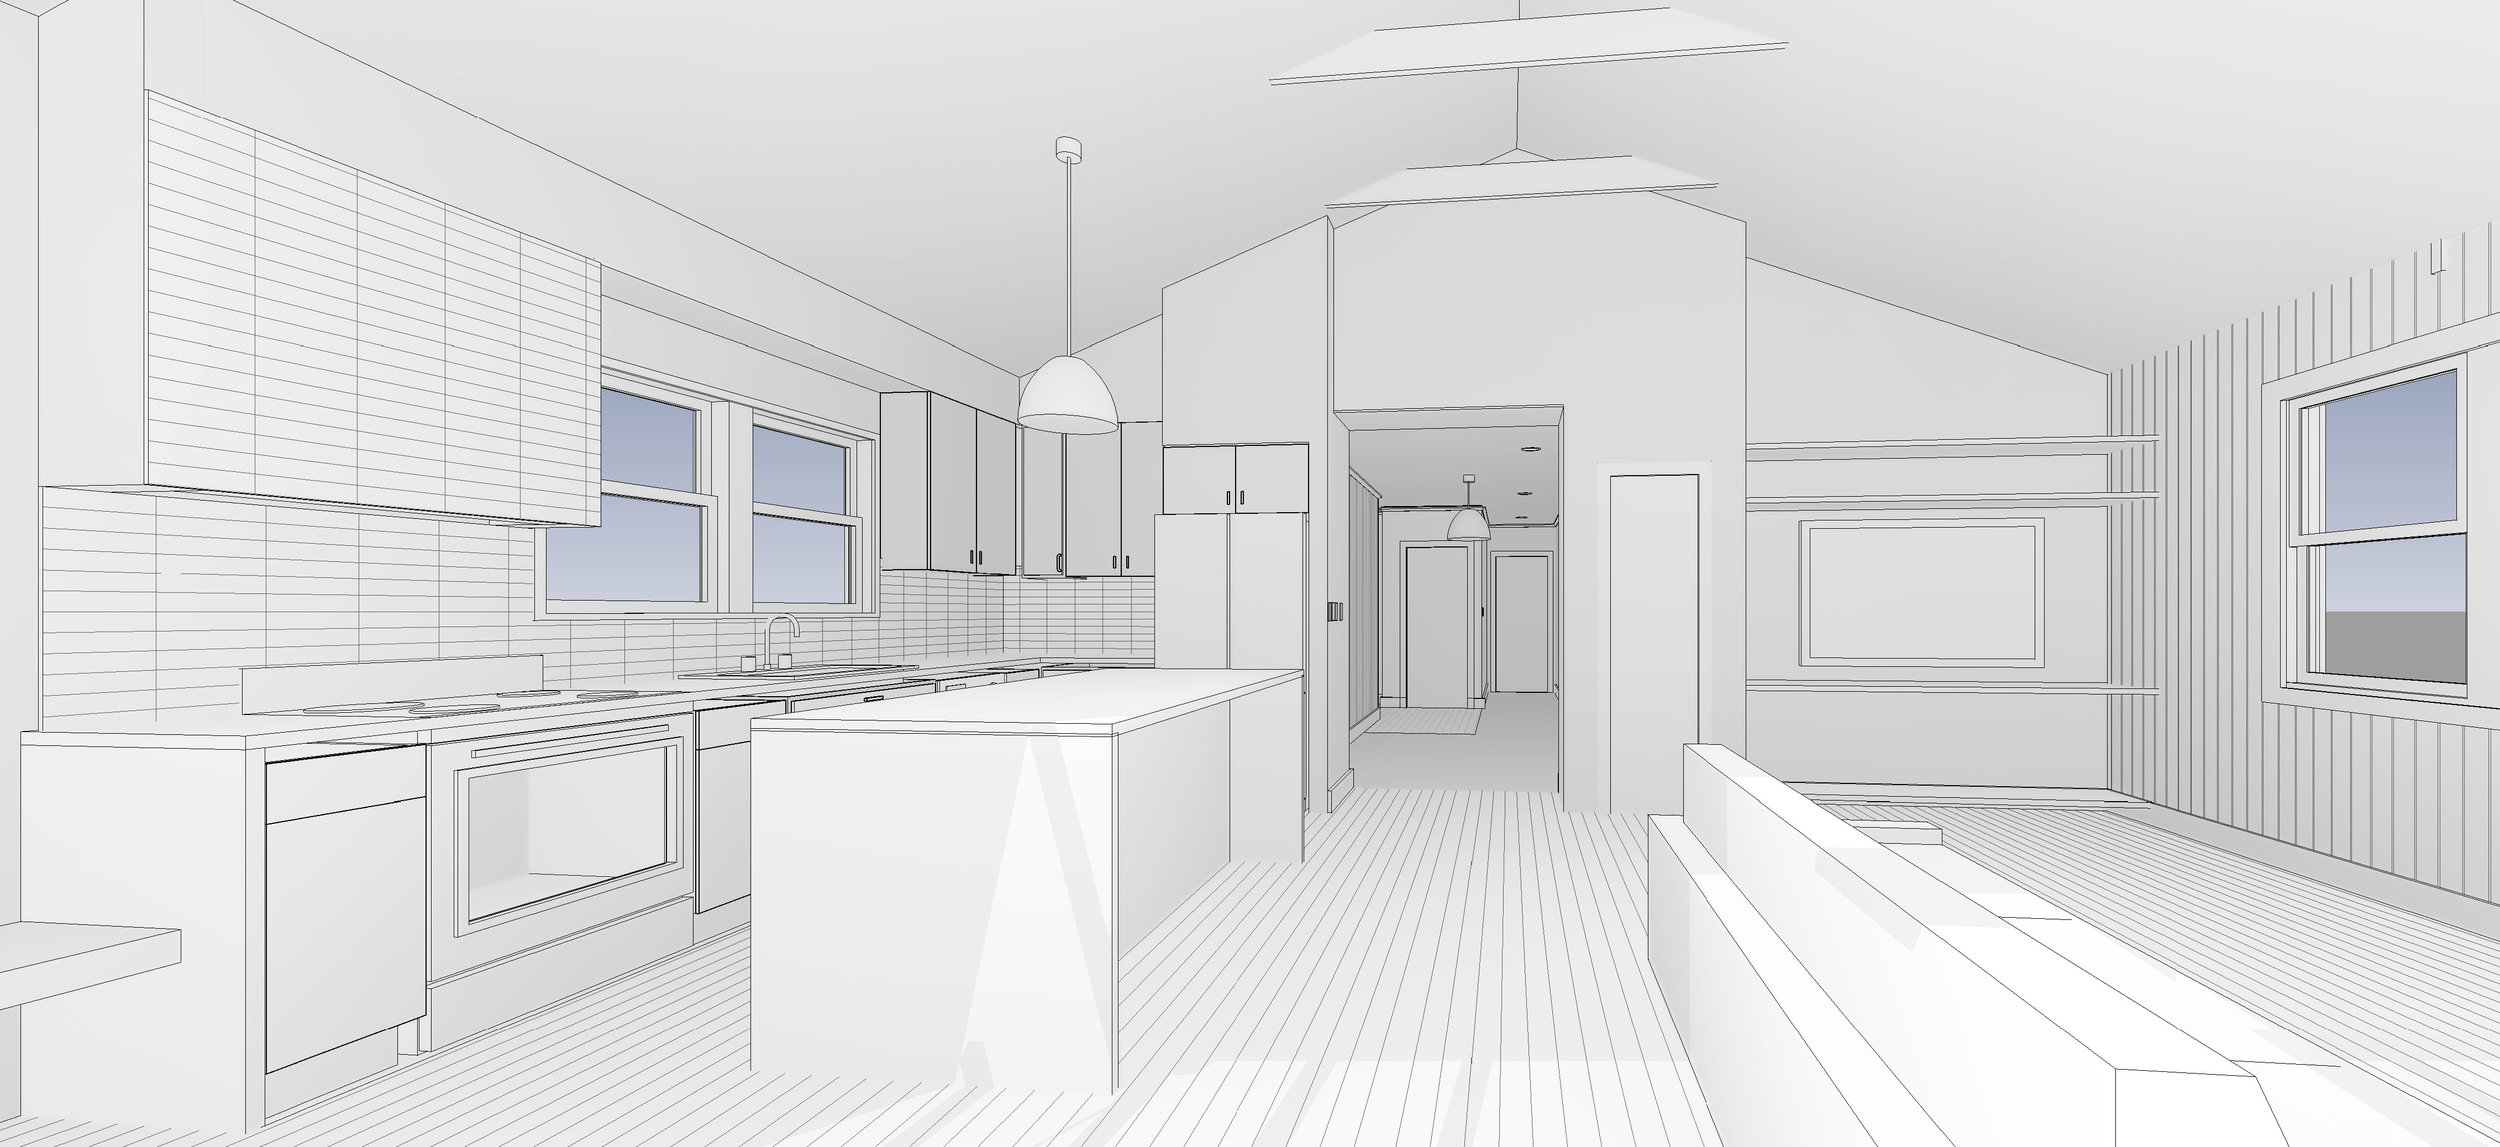 conceptual rendering of kitchen and living area